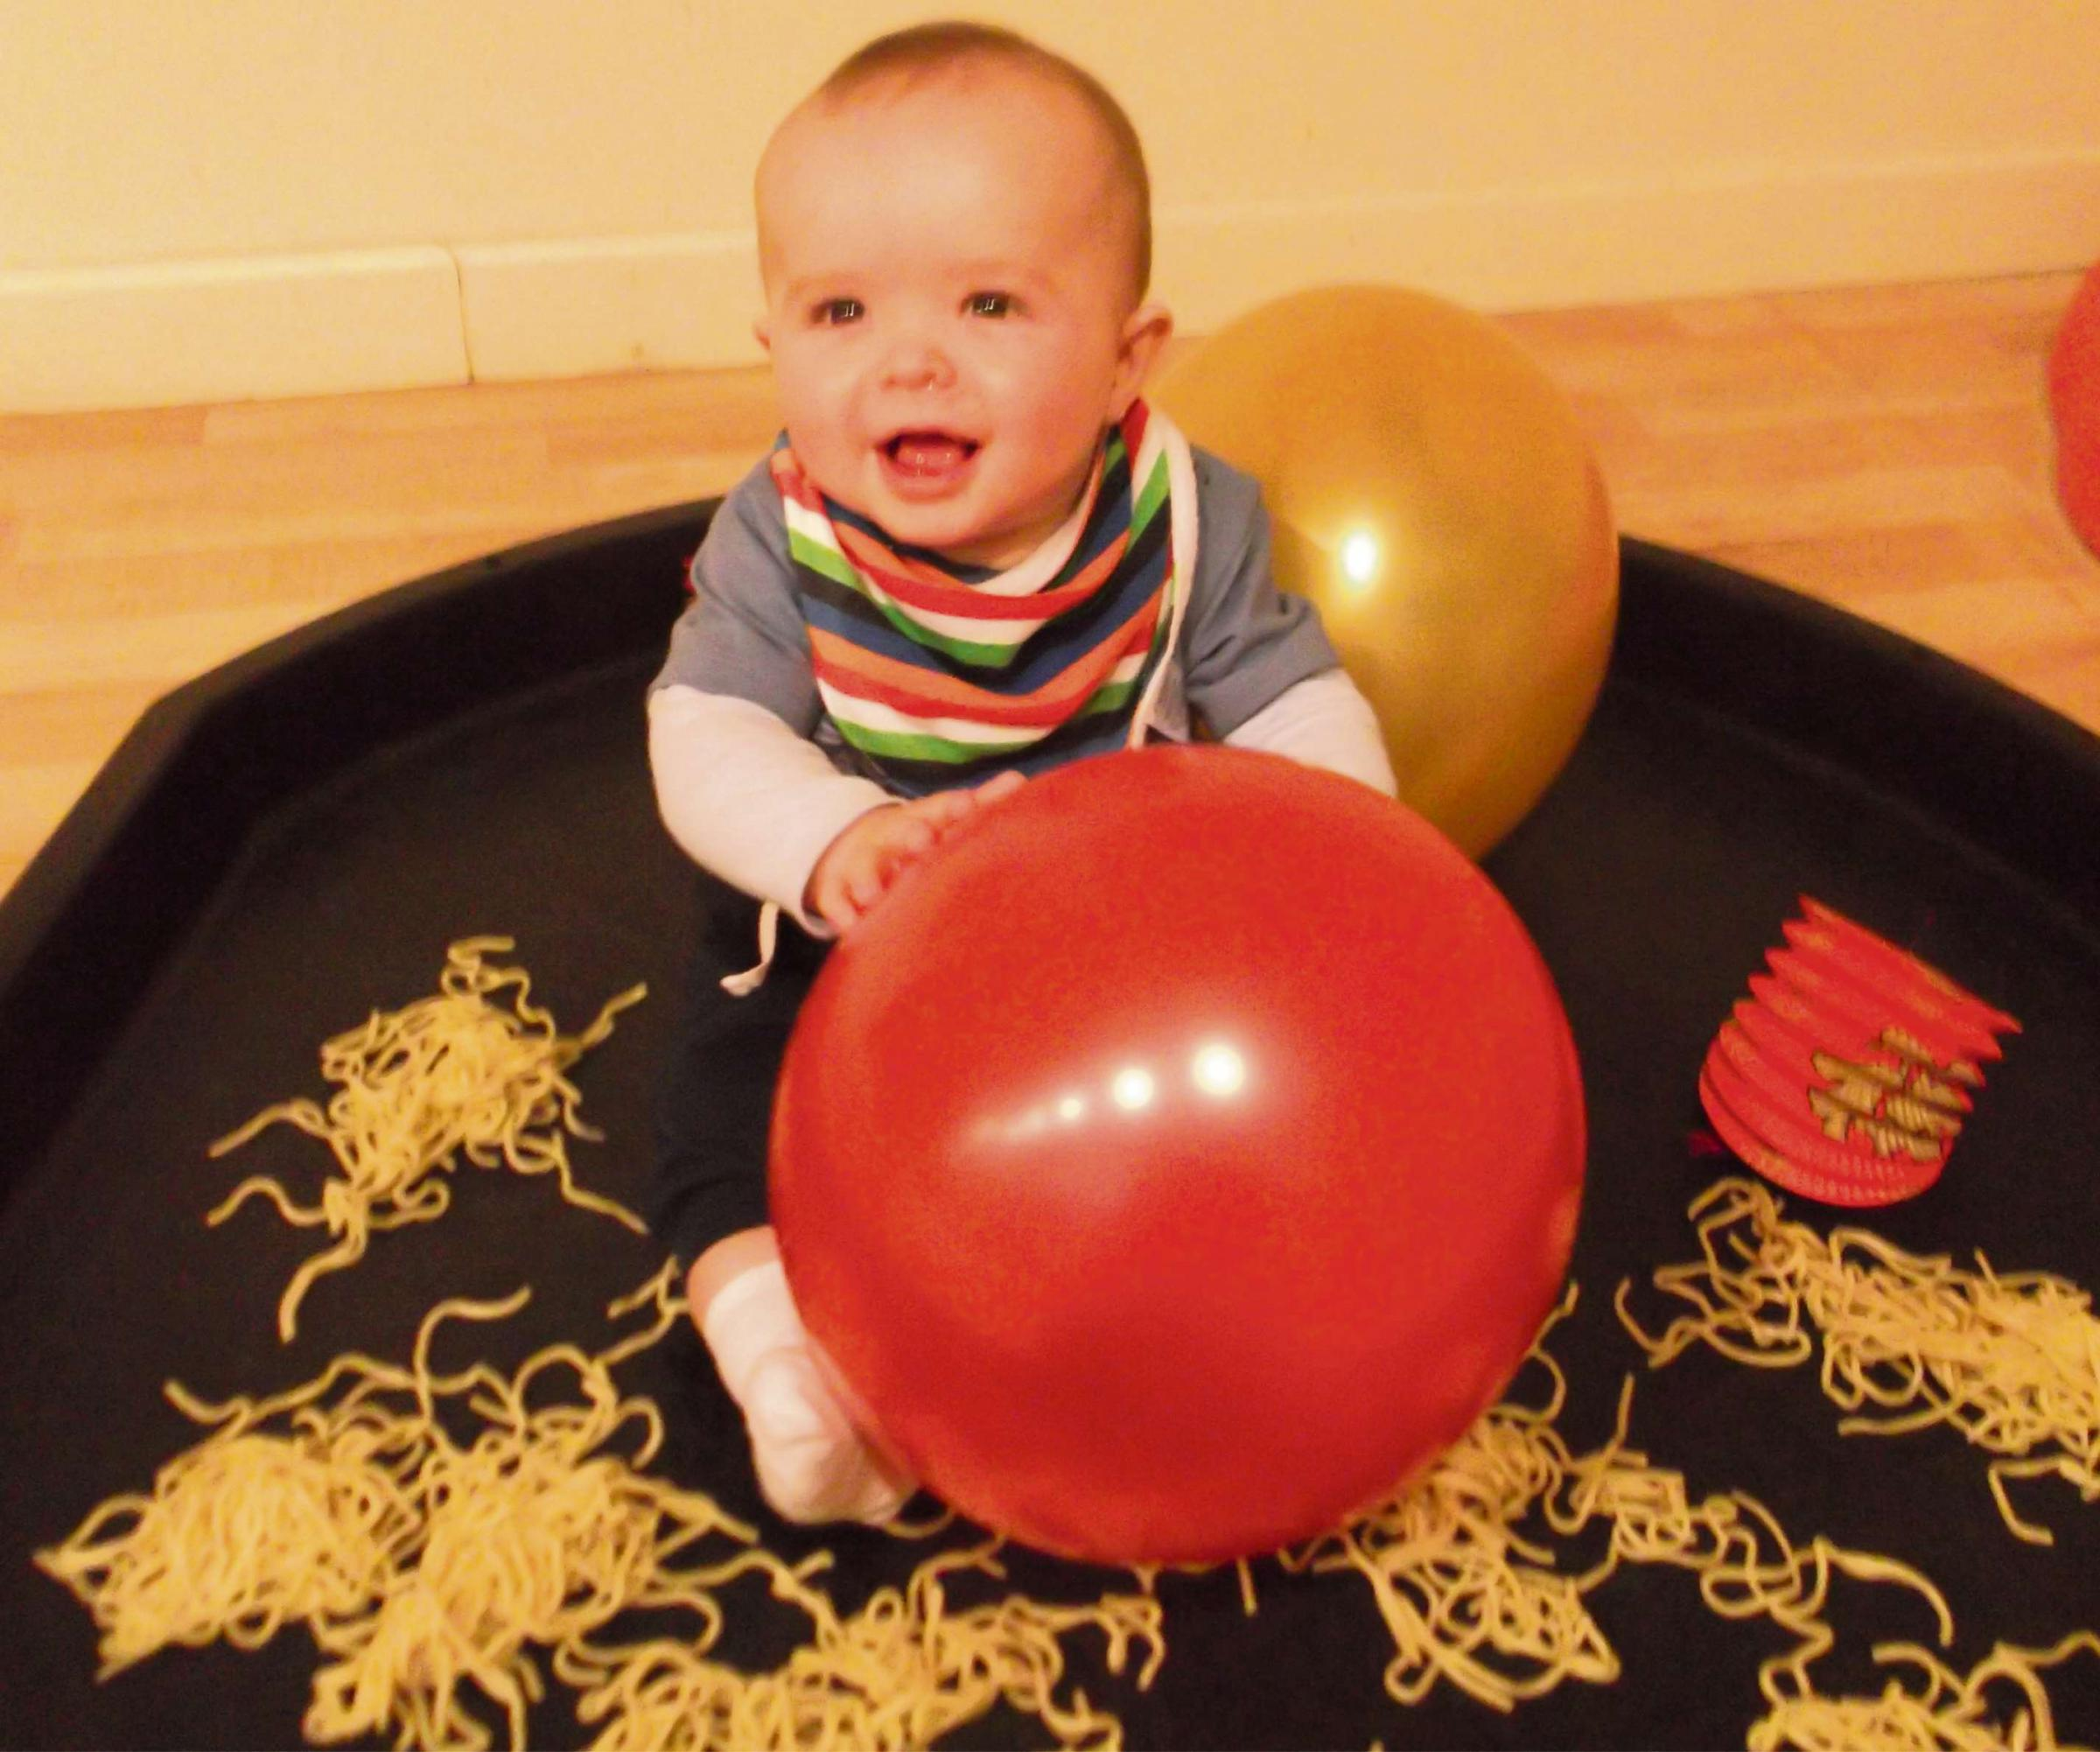 Tobias Satchwell, aged 7 months, from Winchcombe Farm's hatchery room enjoys noodle play to c